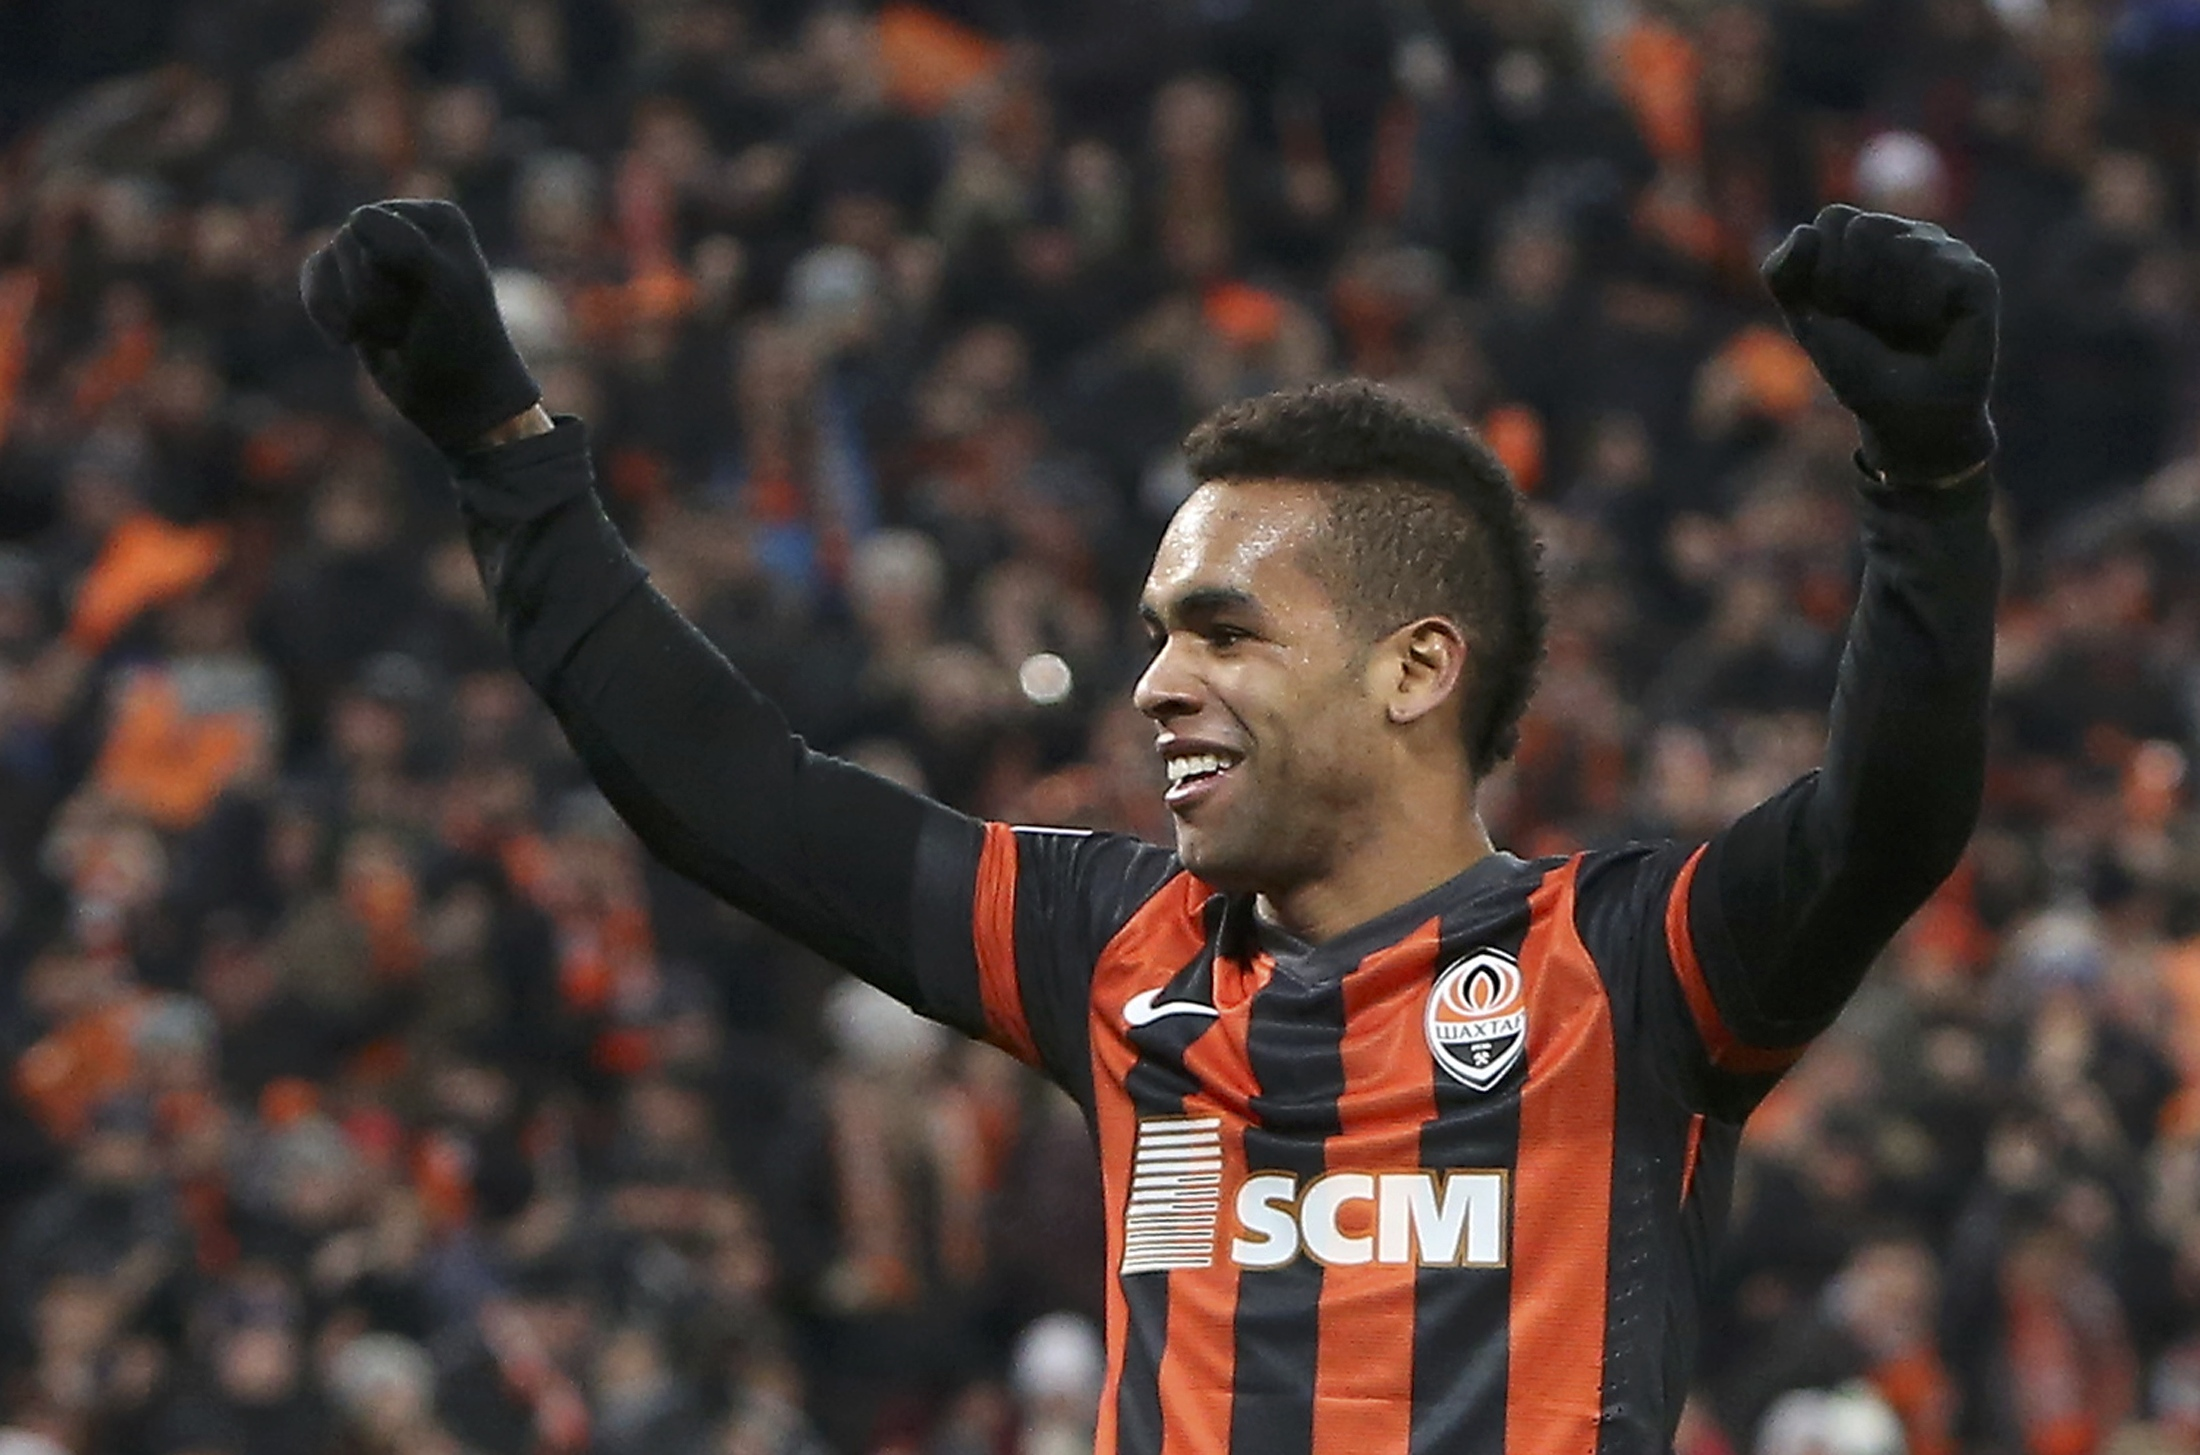 Shakhtar Donetsk's Alex Teixeira reacts during the Champions League soccer match against Real Sociedad at the Donbass Arena stadium in Donetsk